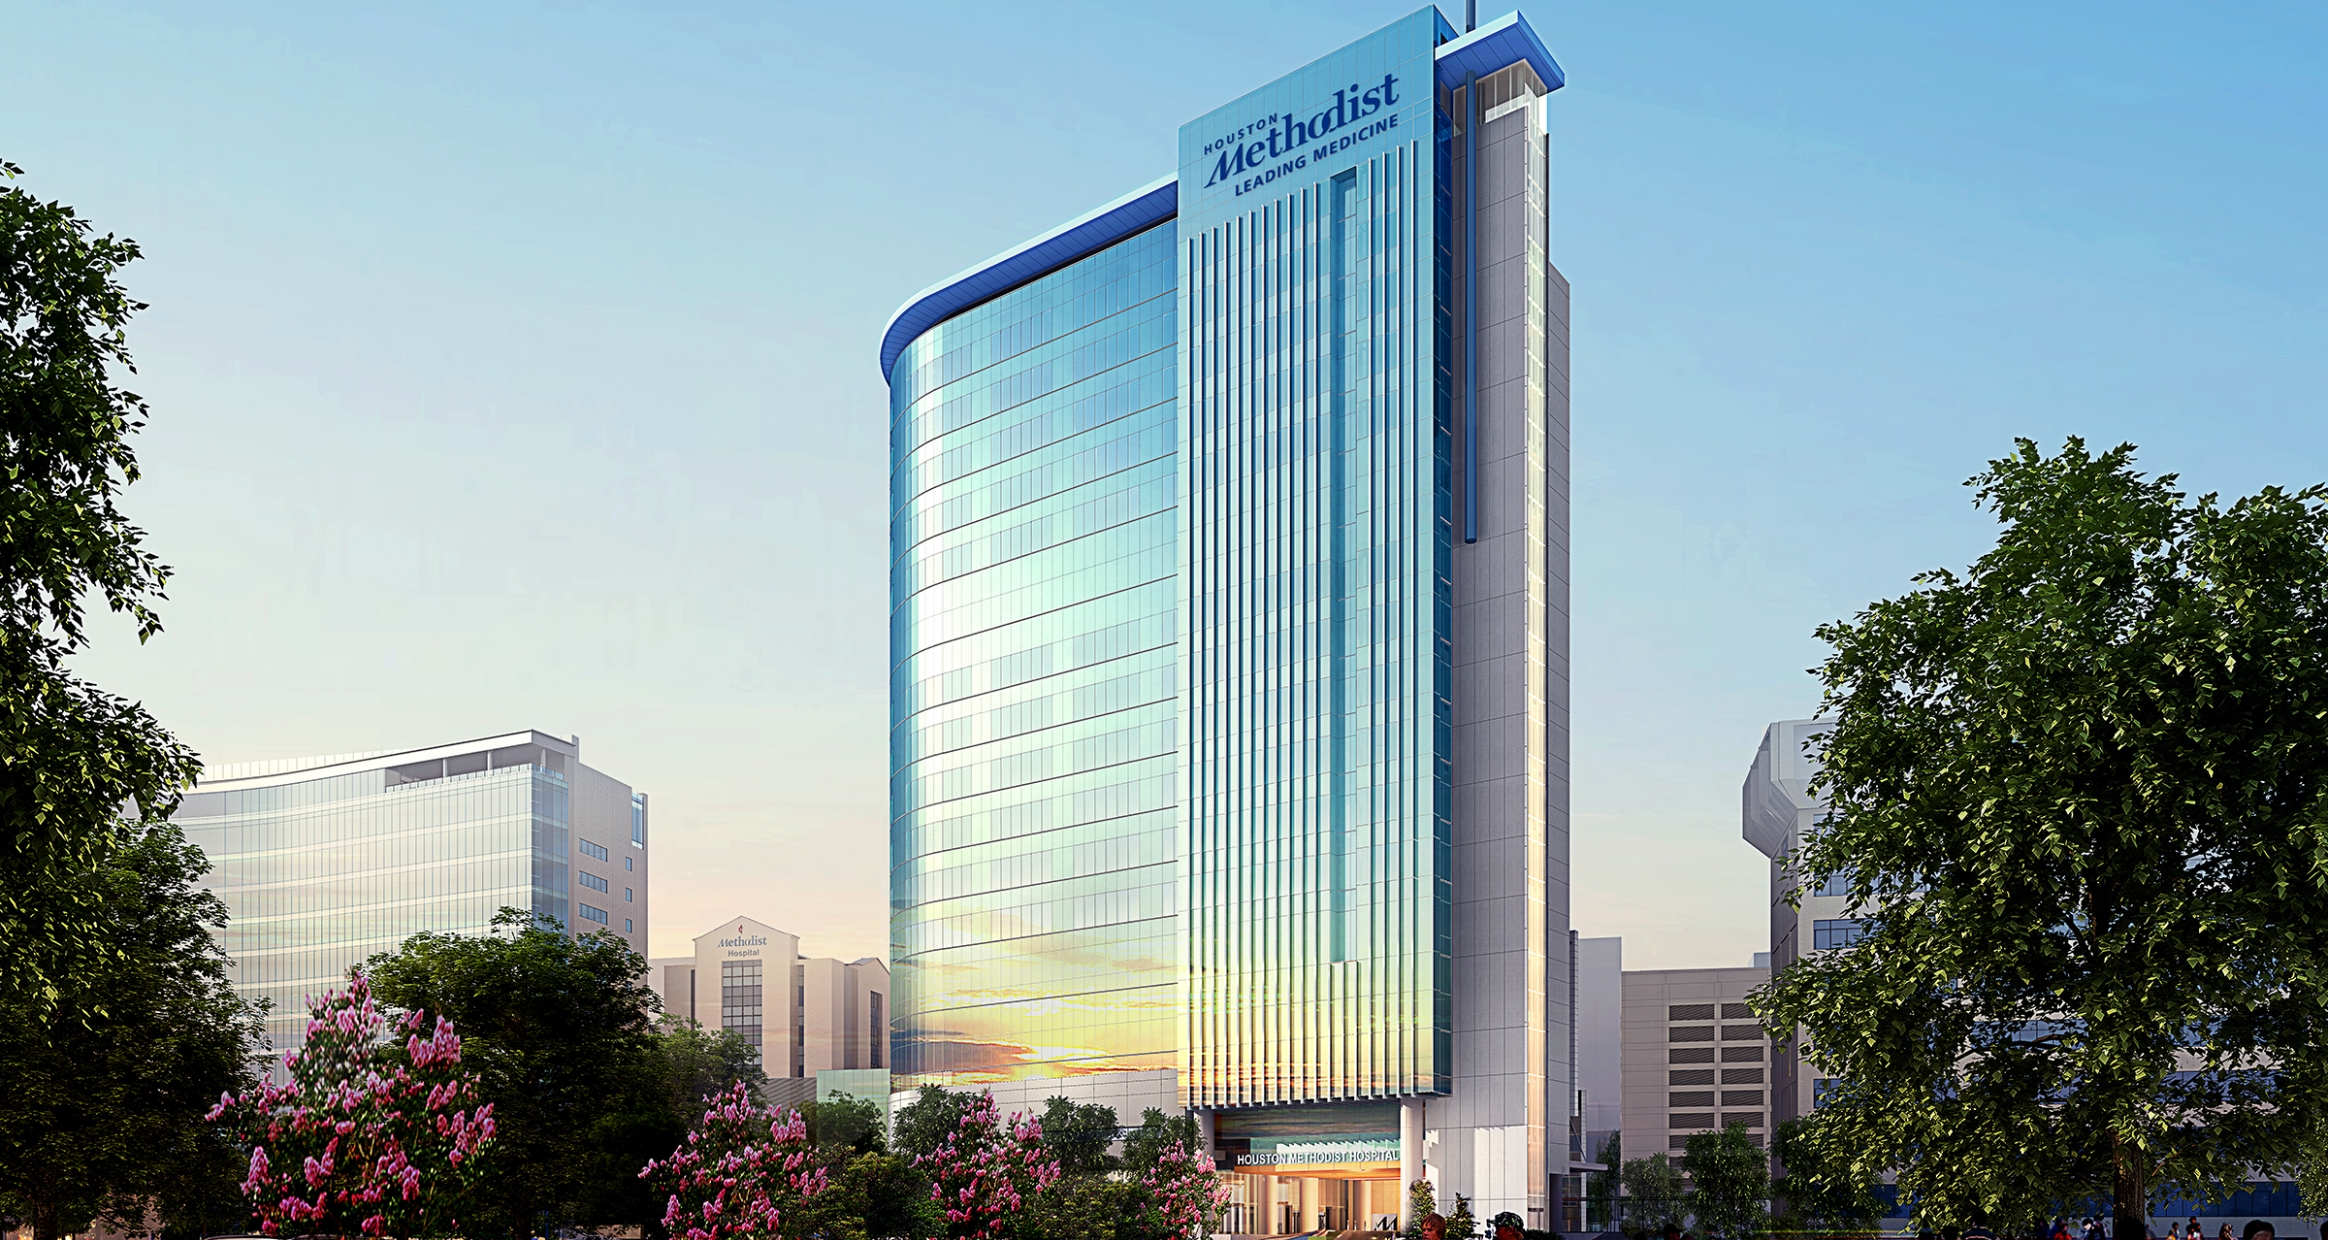 Exterior rendering of Houston Methodist Hospital North Campus Expansion